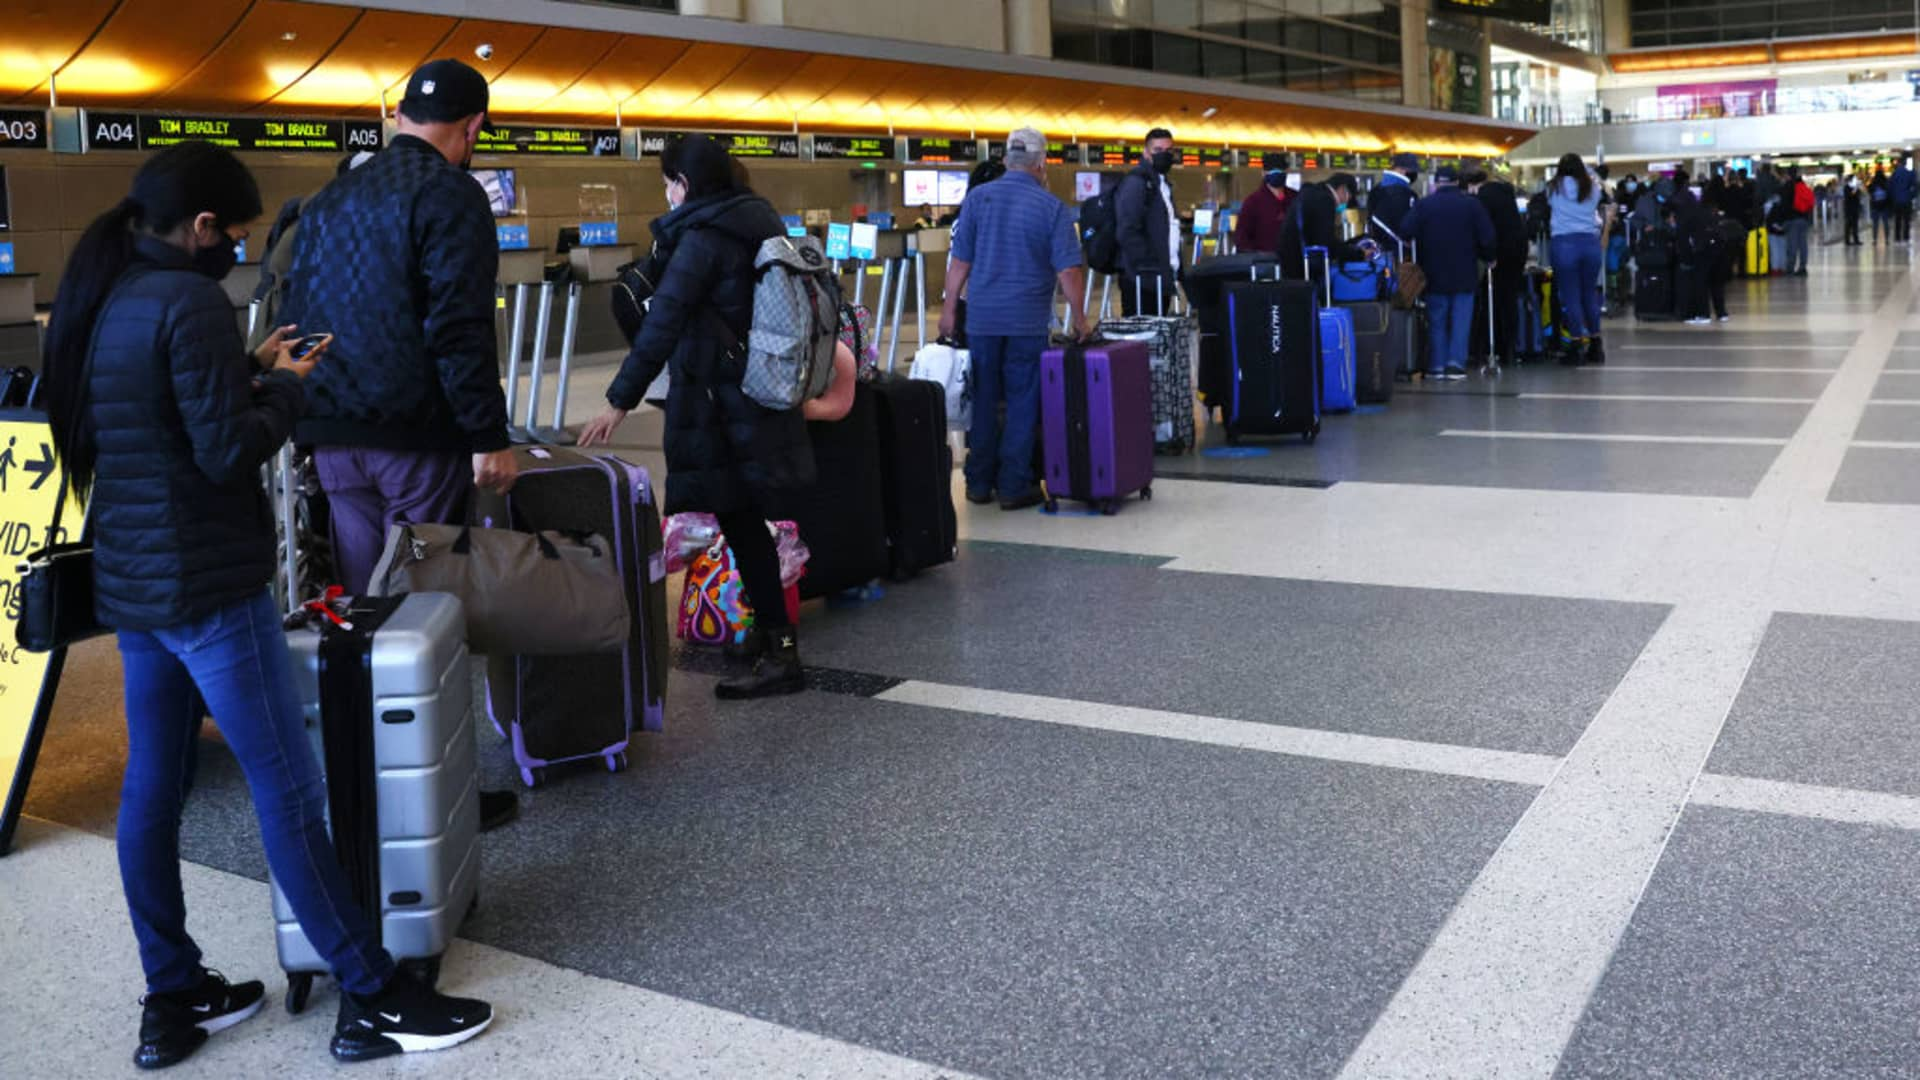 Travelers wait in line to check in at the Tom Bradley International Terminal at Los Angeles International Airport (LAX) amid a COVID-19 surge in Southern California on December 22, 2020 in Los Angeles, California.